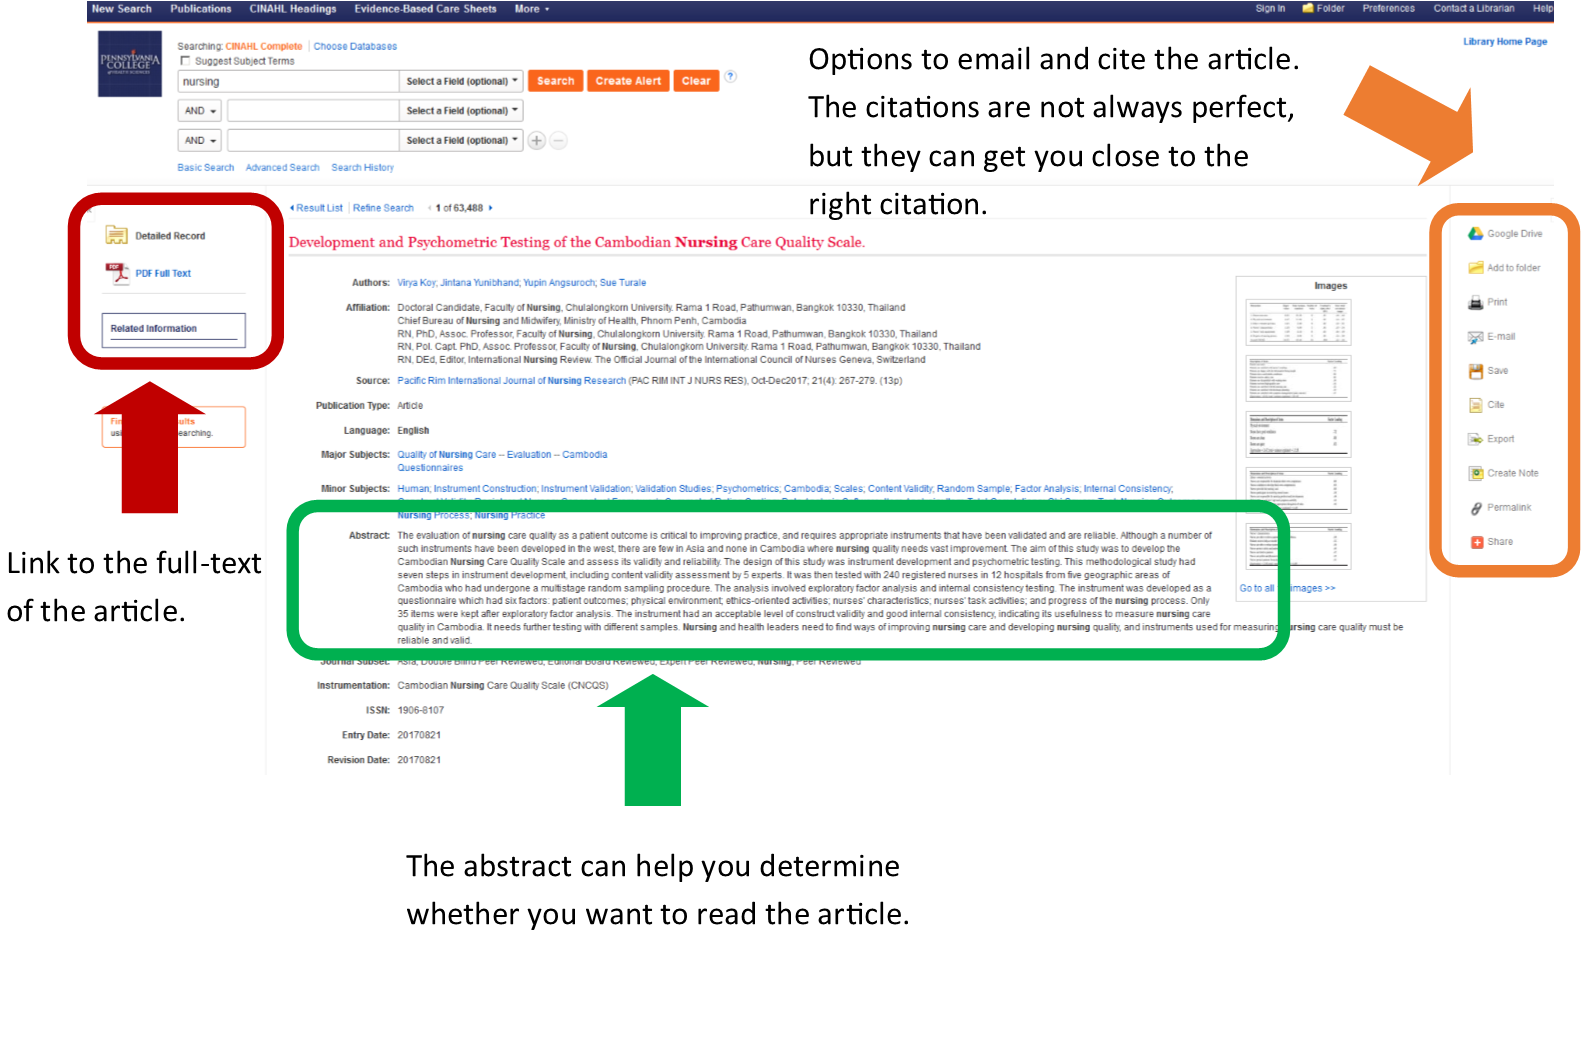 Article record in CINAHL including a link to full-text, citation help, and an option to email the article